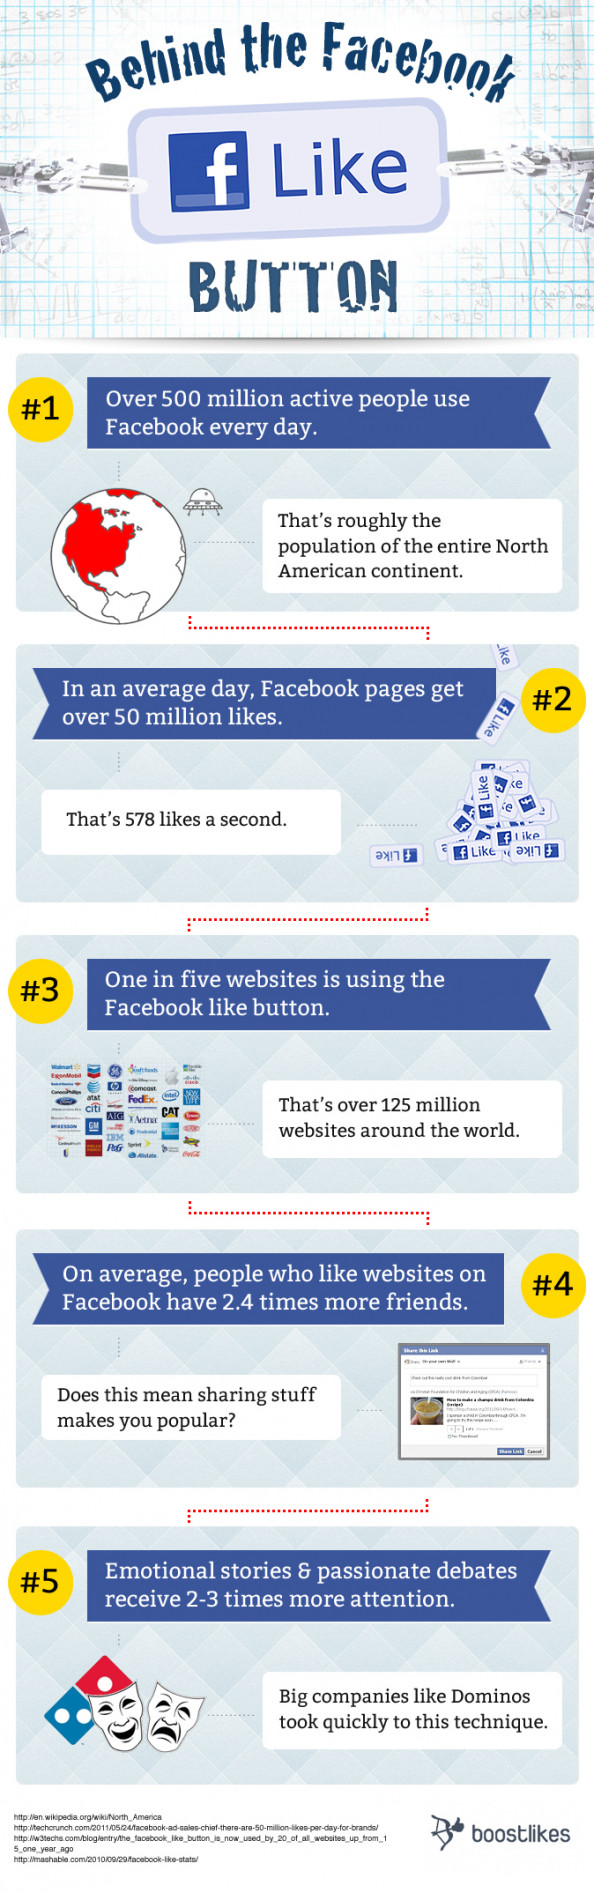 Behind the Facebook Like Button Infographic